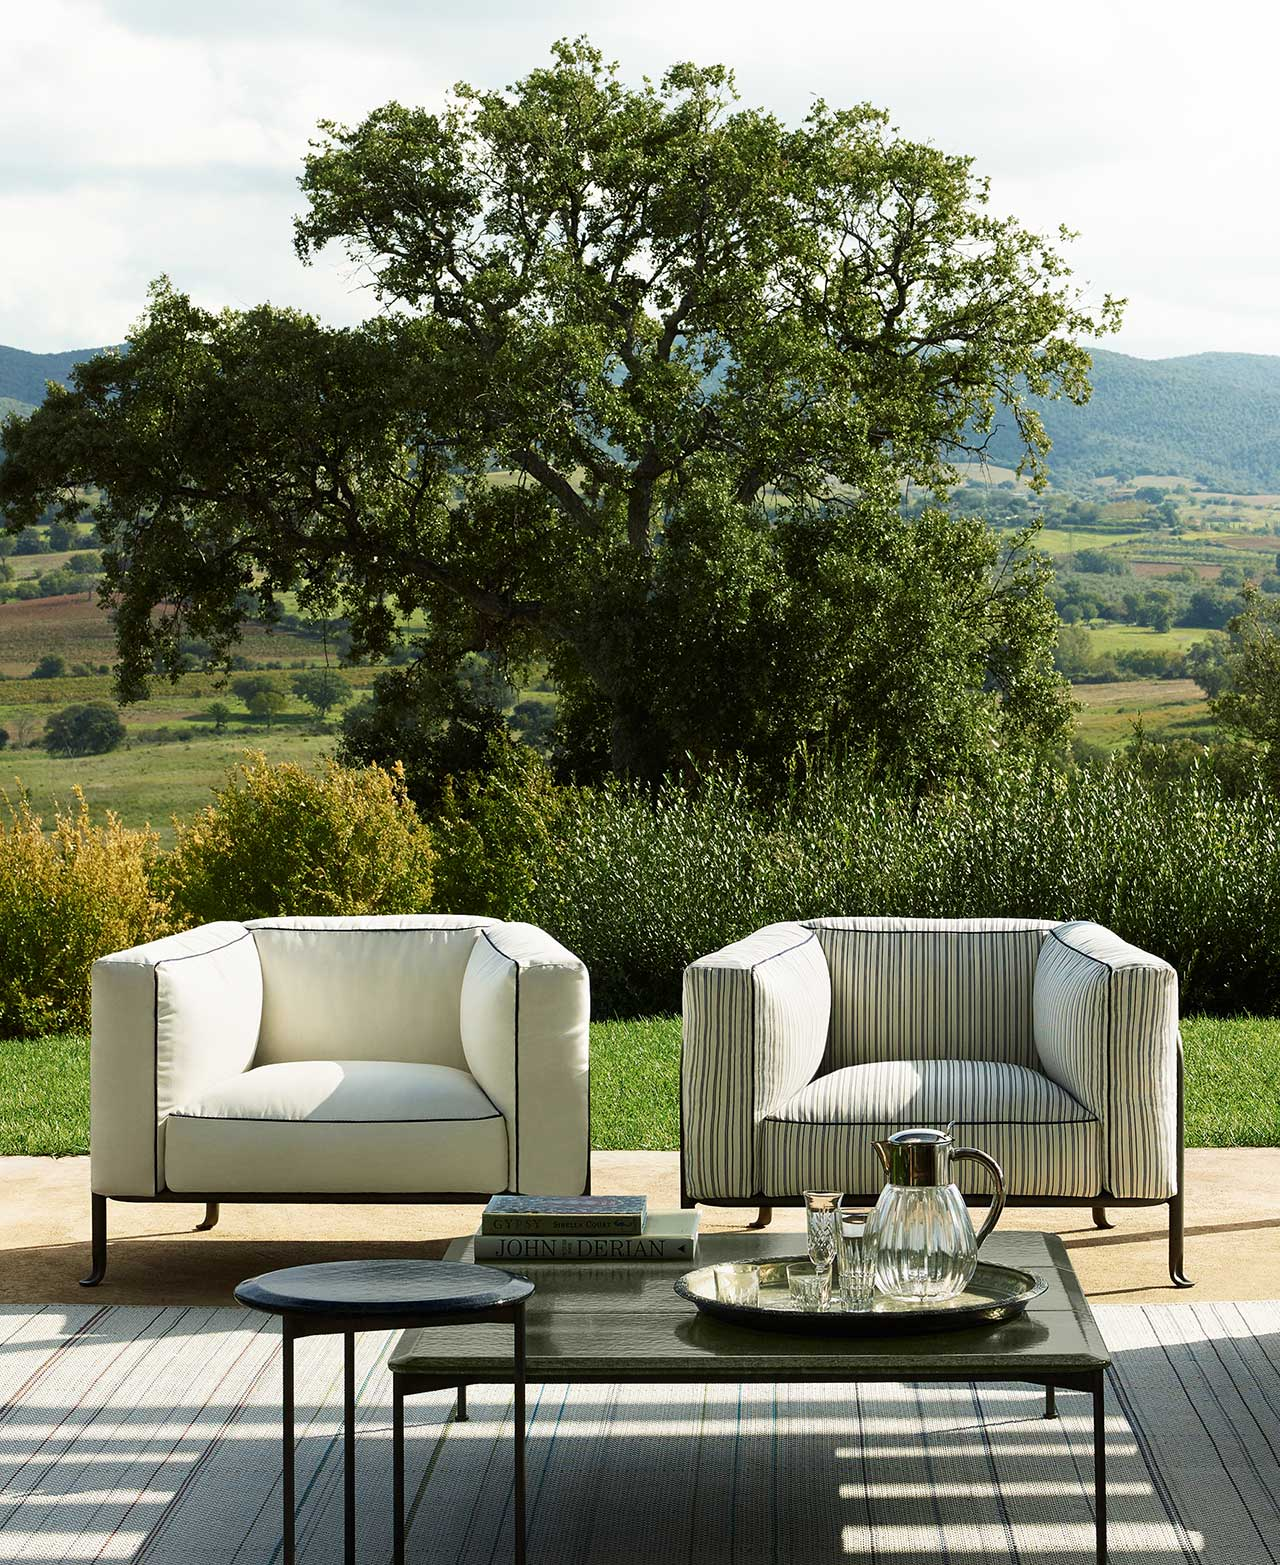 two chairs outdoors